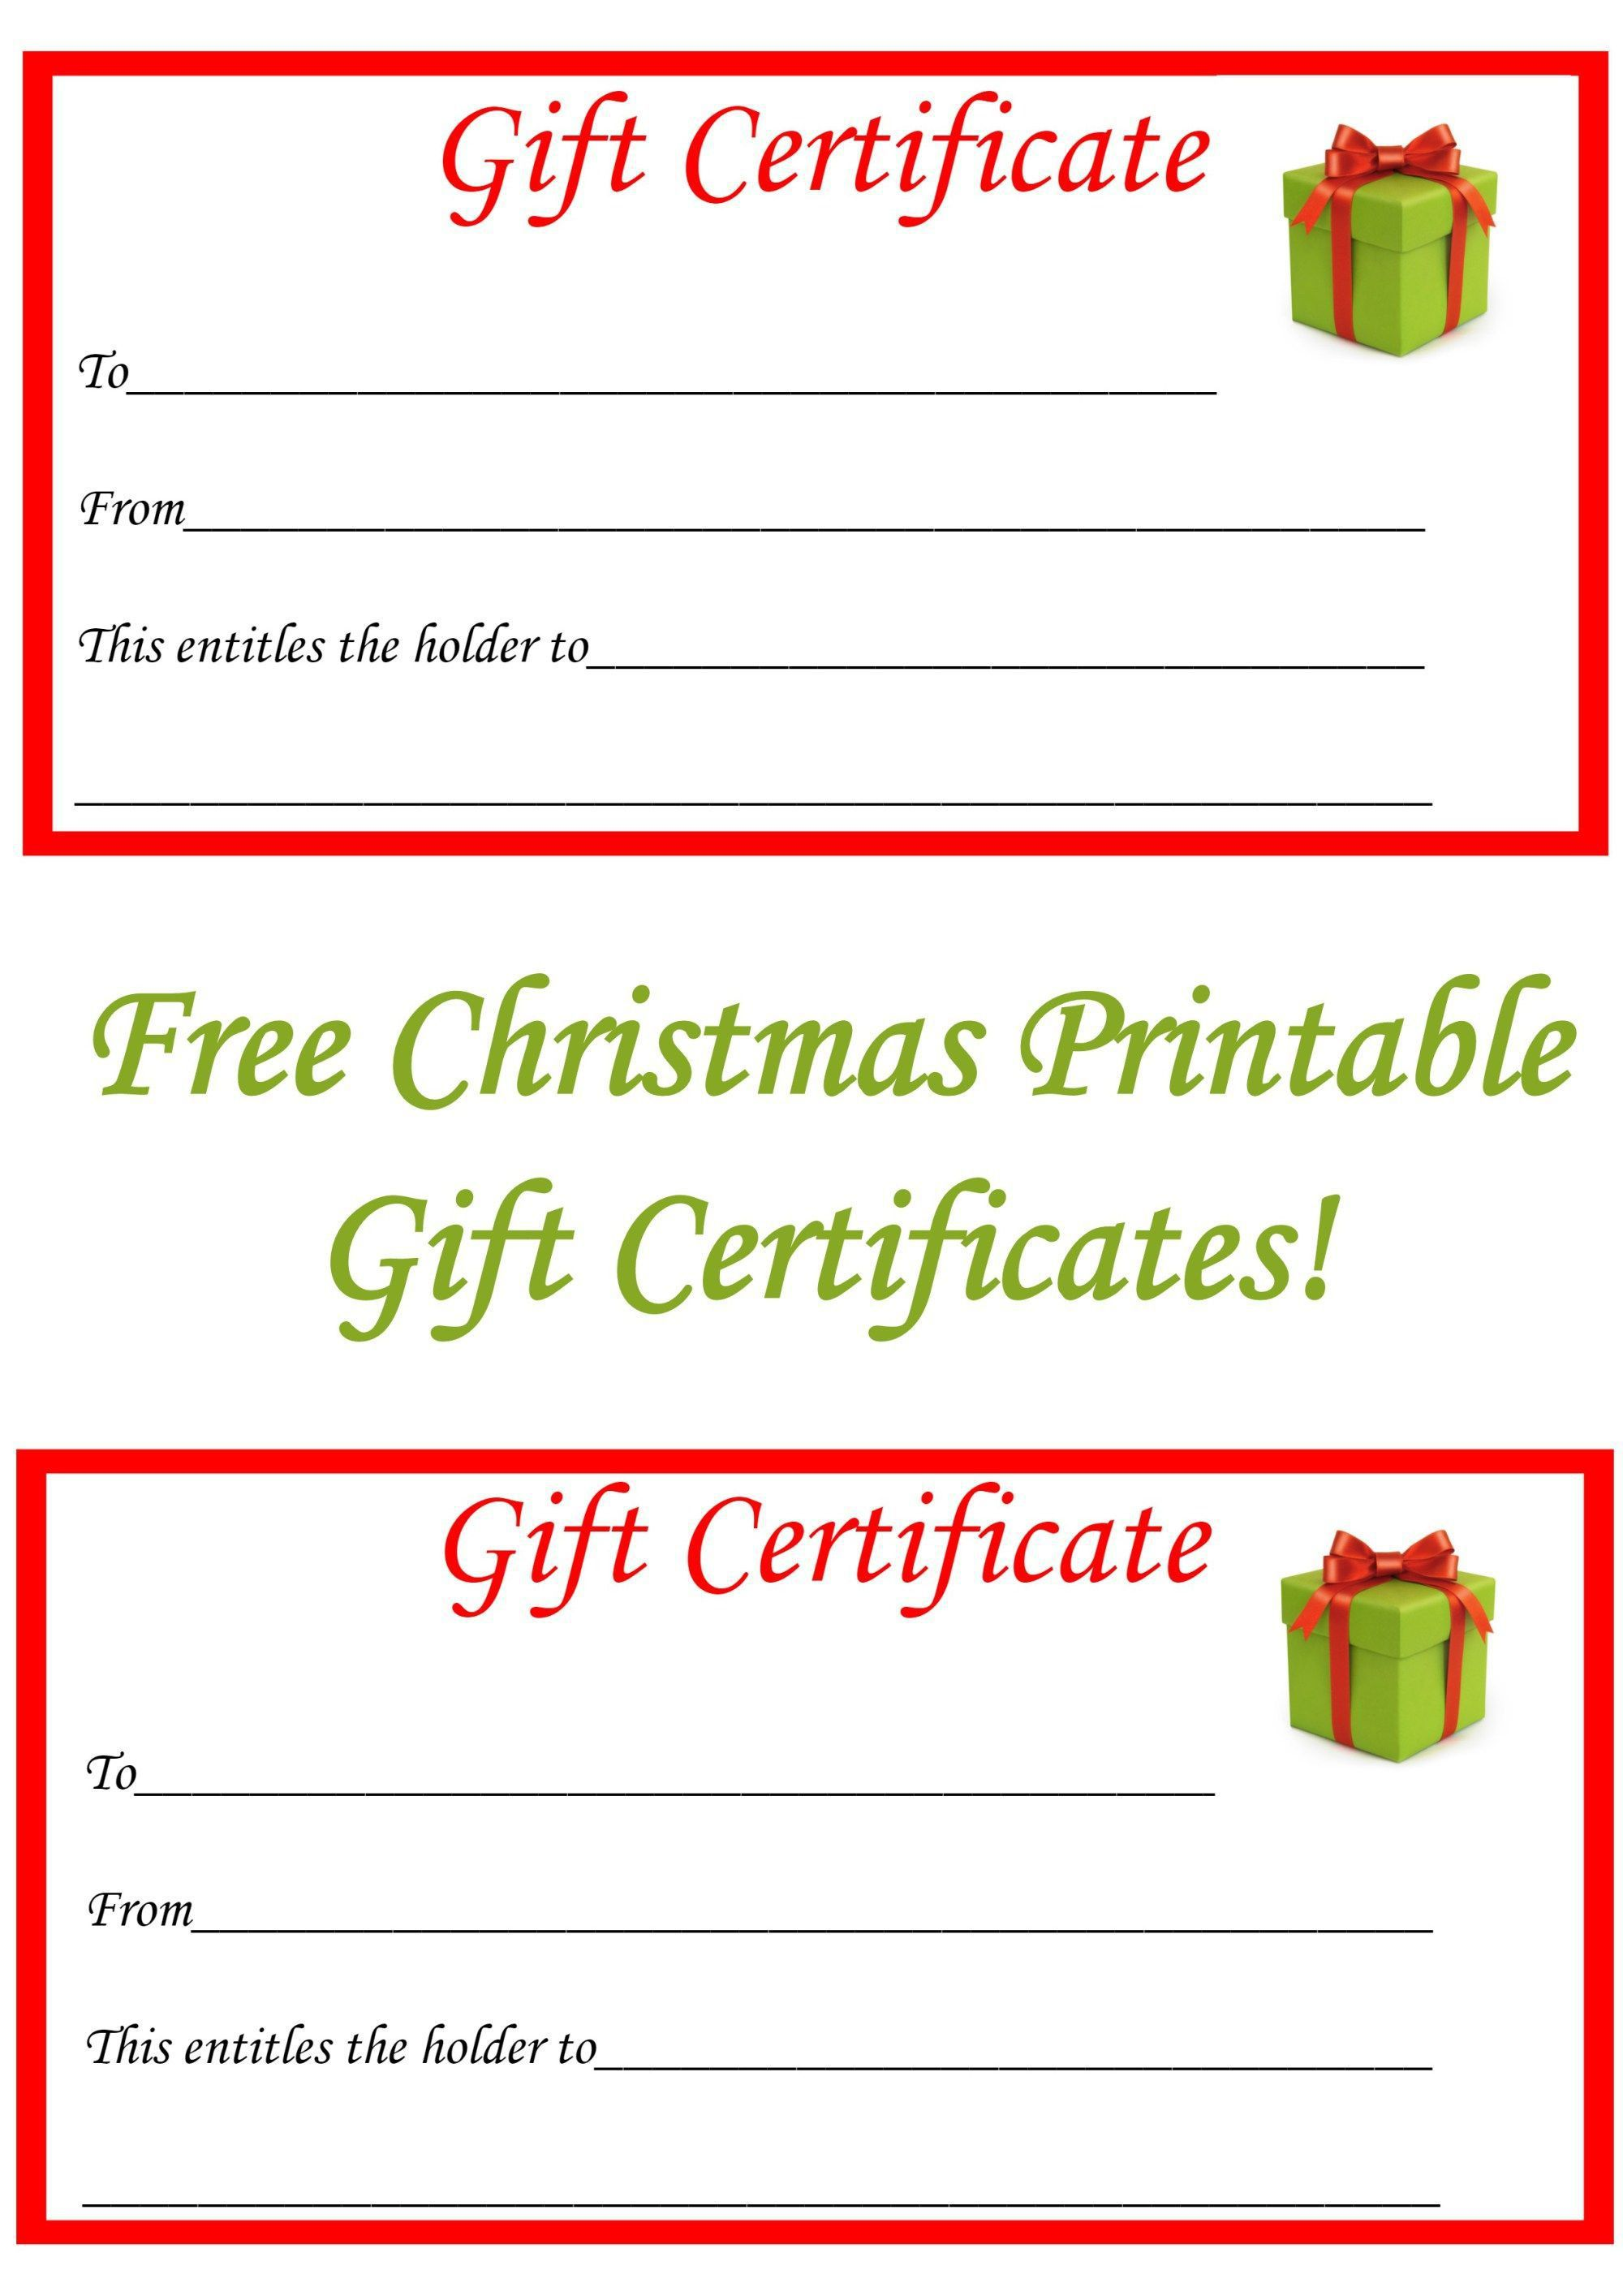 002 Rare Free Silent Auction Gift Certificate Template Idea Full